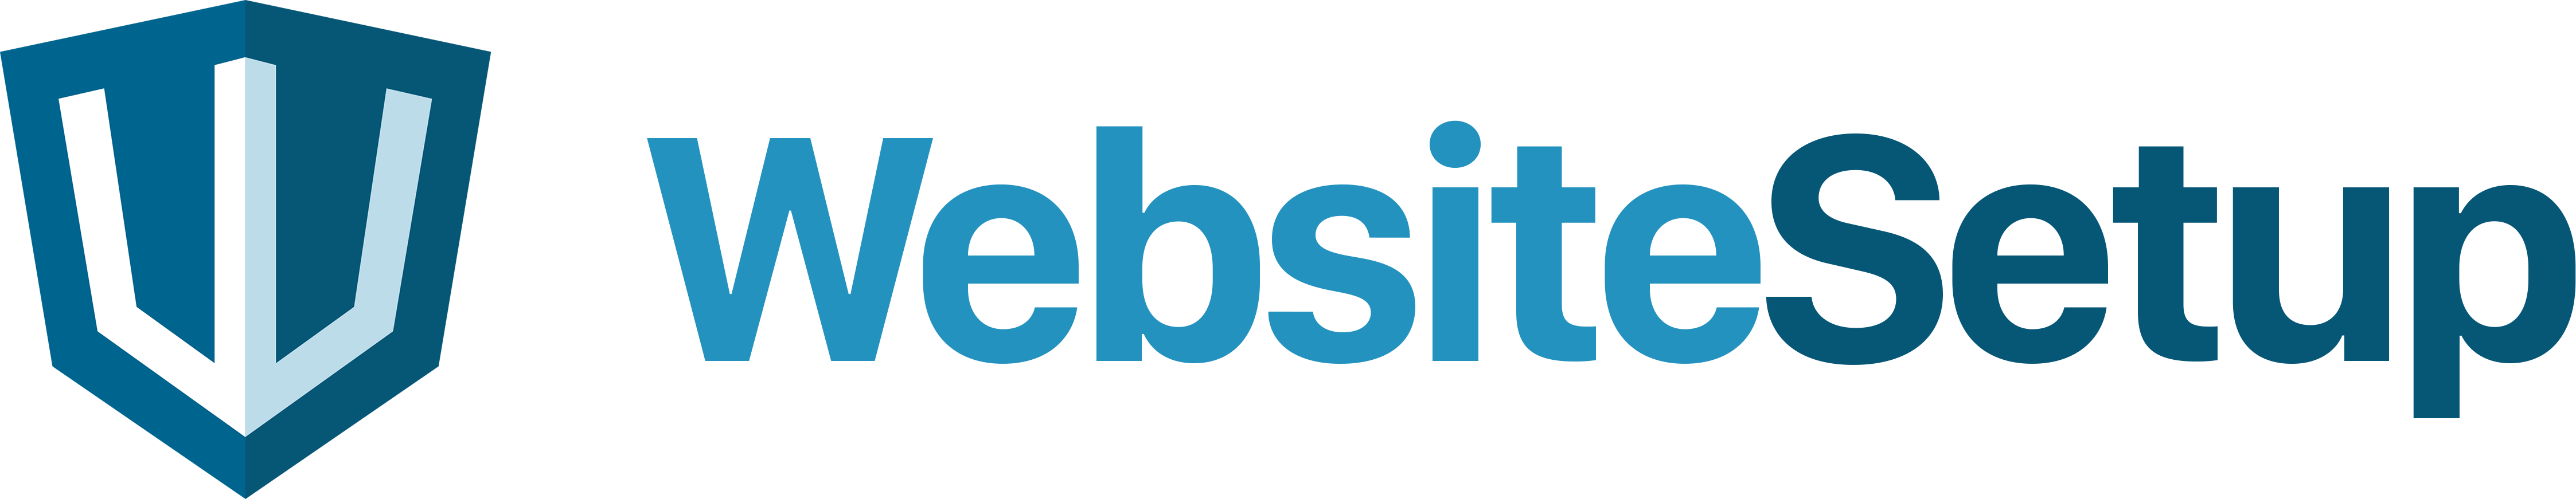 websitesetup.org logo